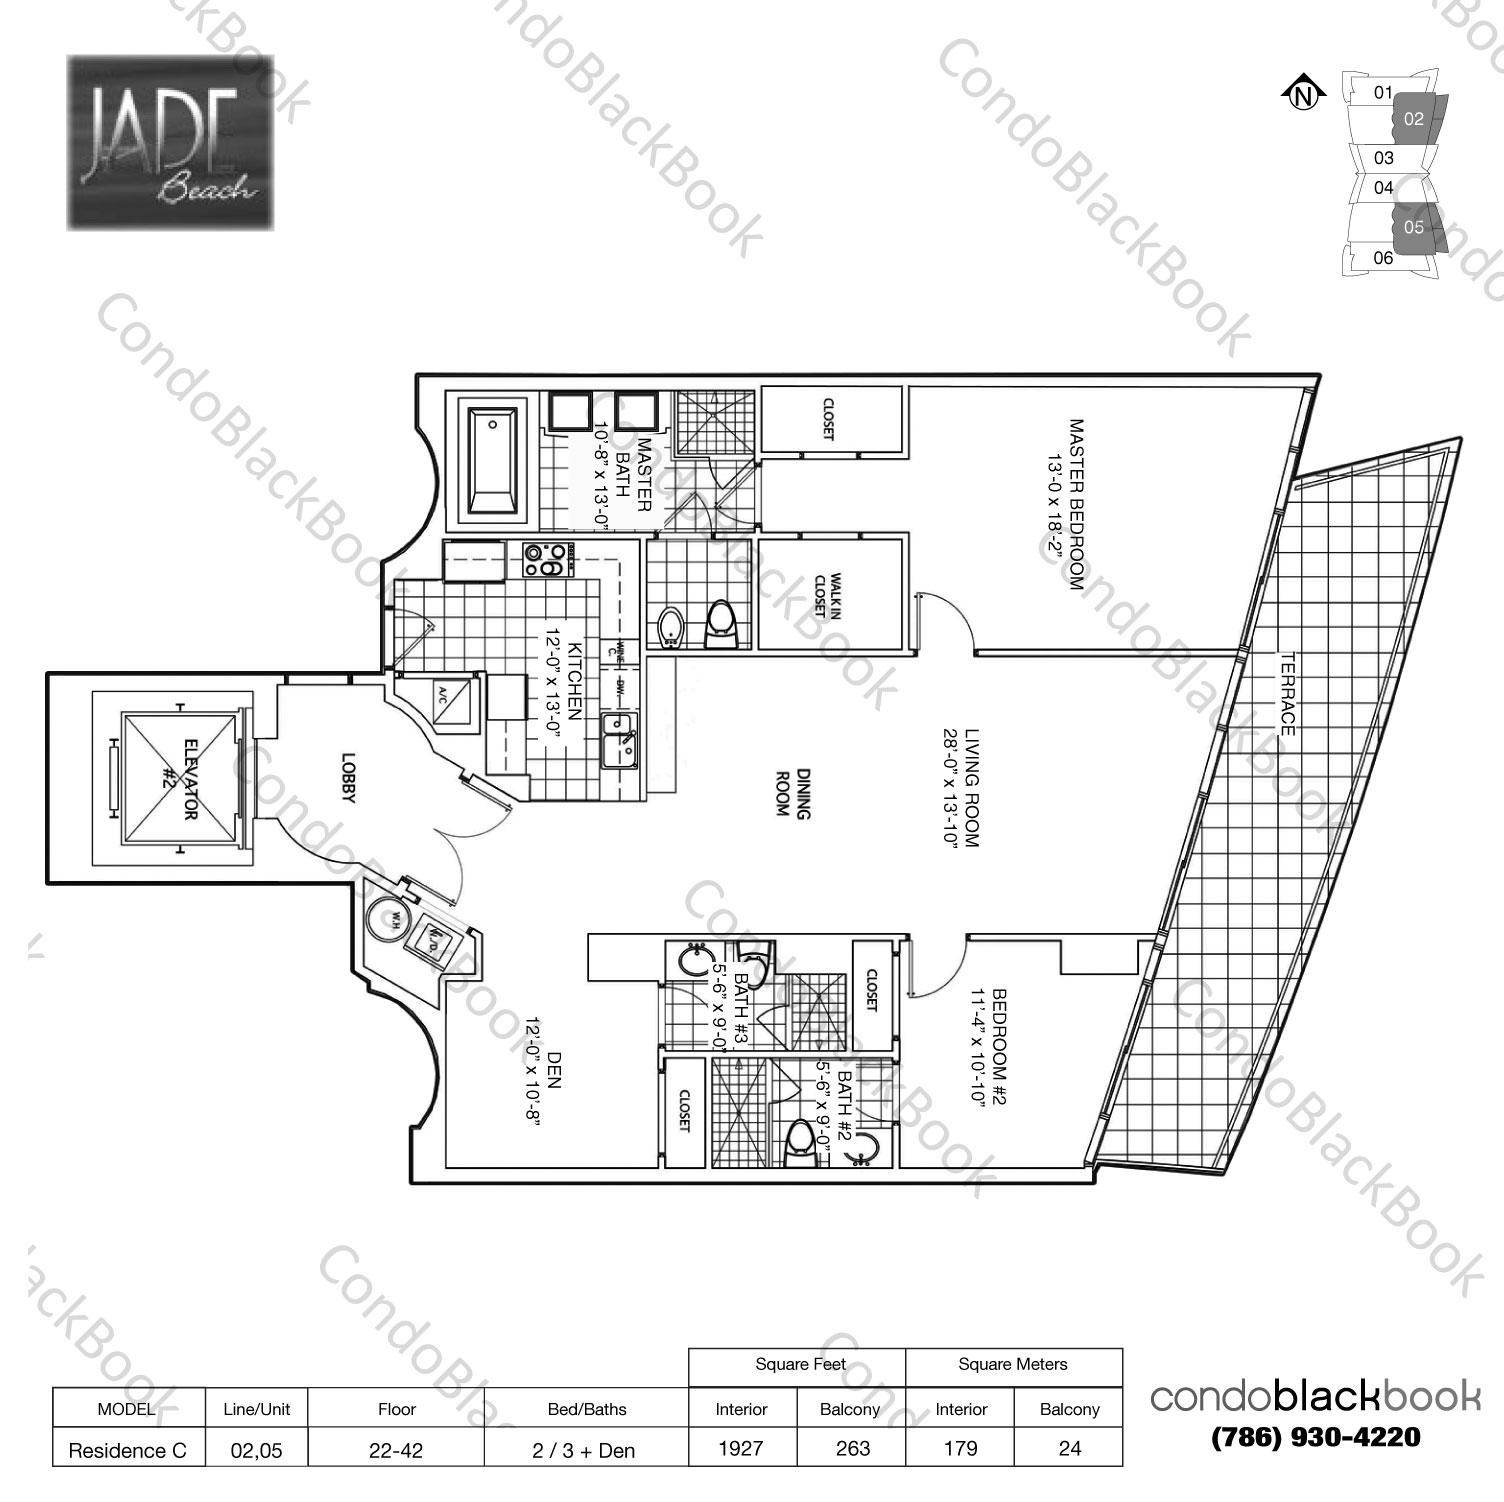 Floor plan for Jade Beach Sunny Isles Beach, model Residence C, line 02,05, 2 / 3 + Den bedrooms, 1616 sq ft